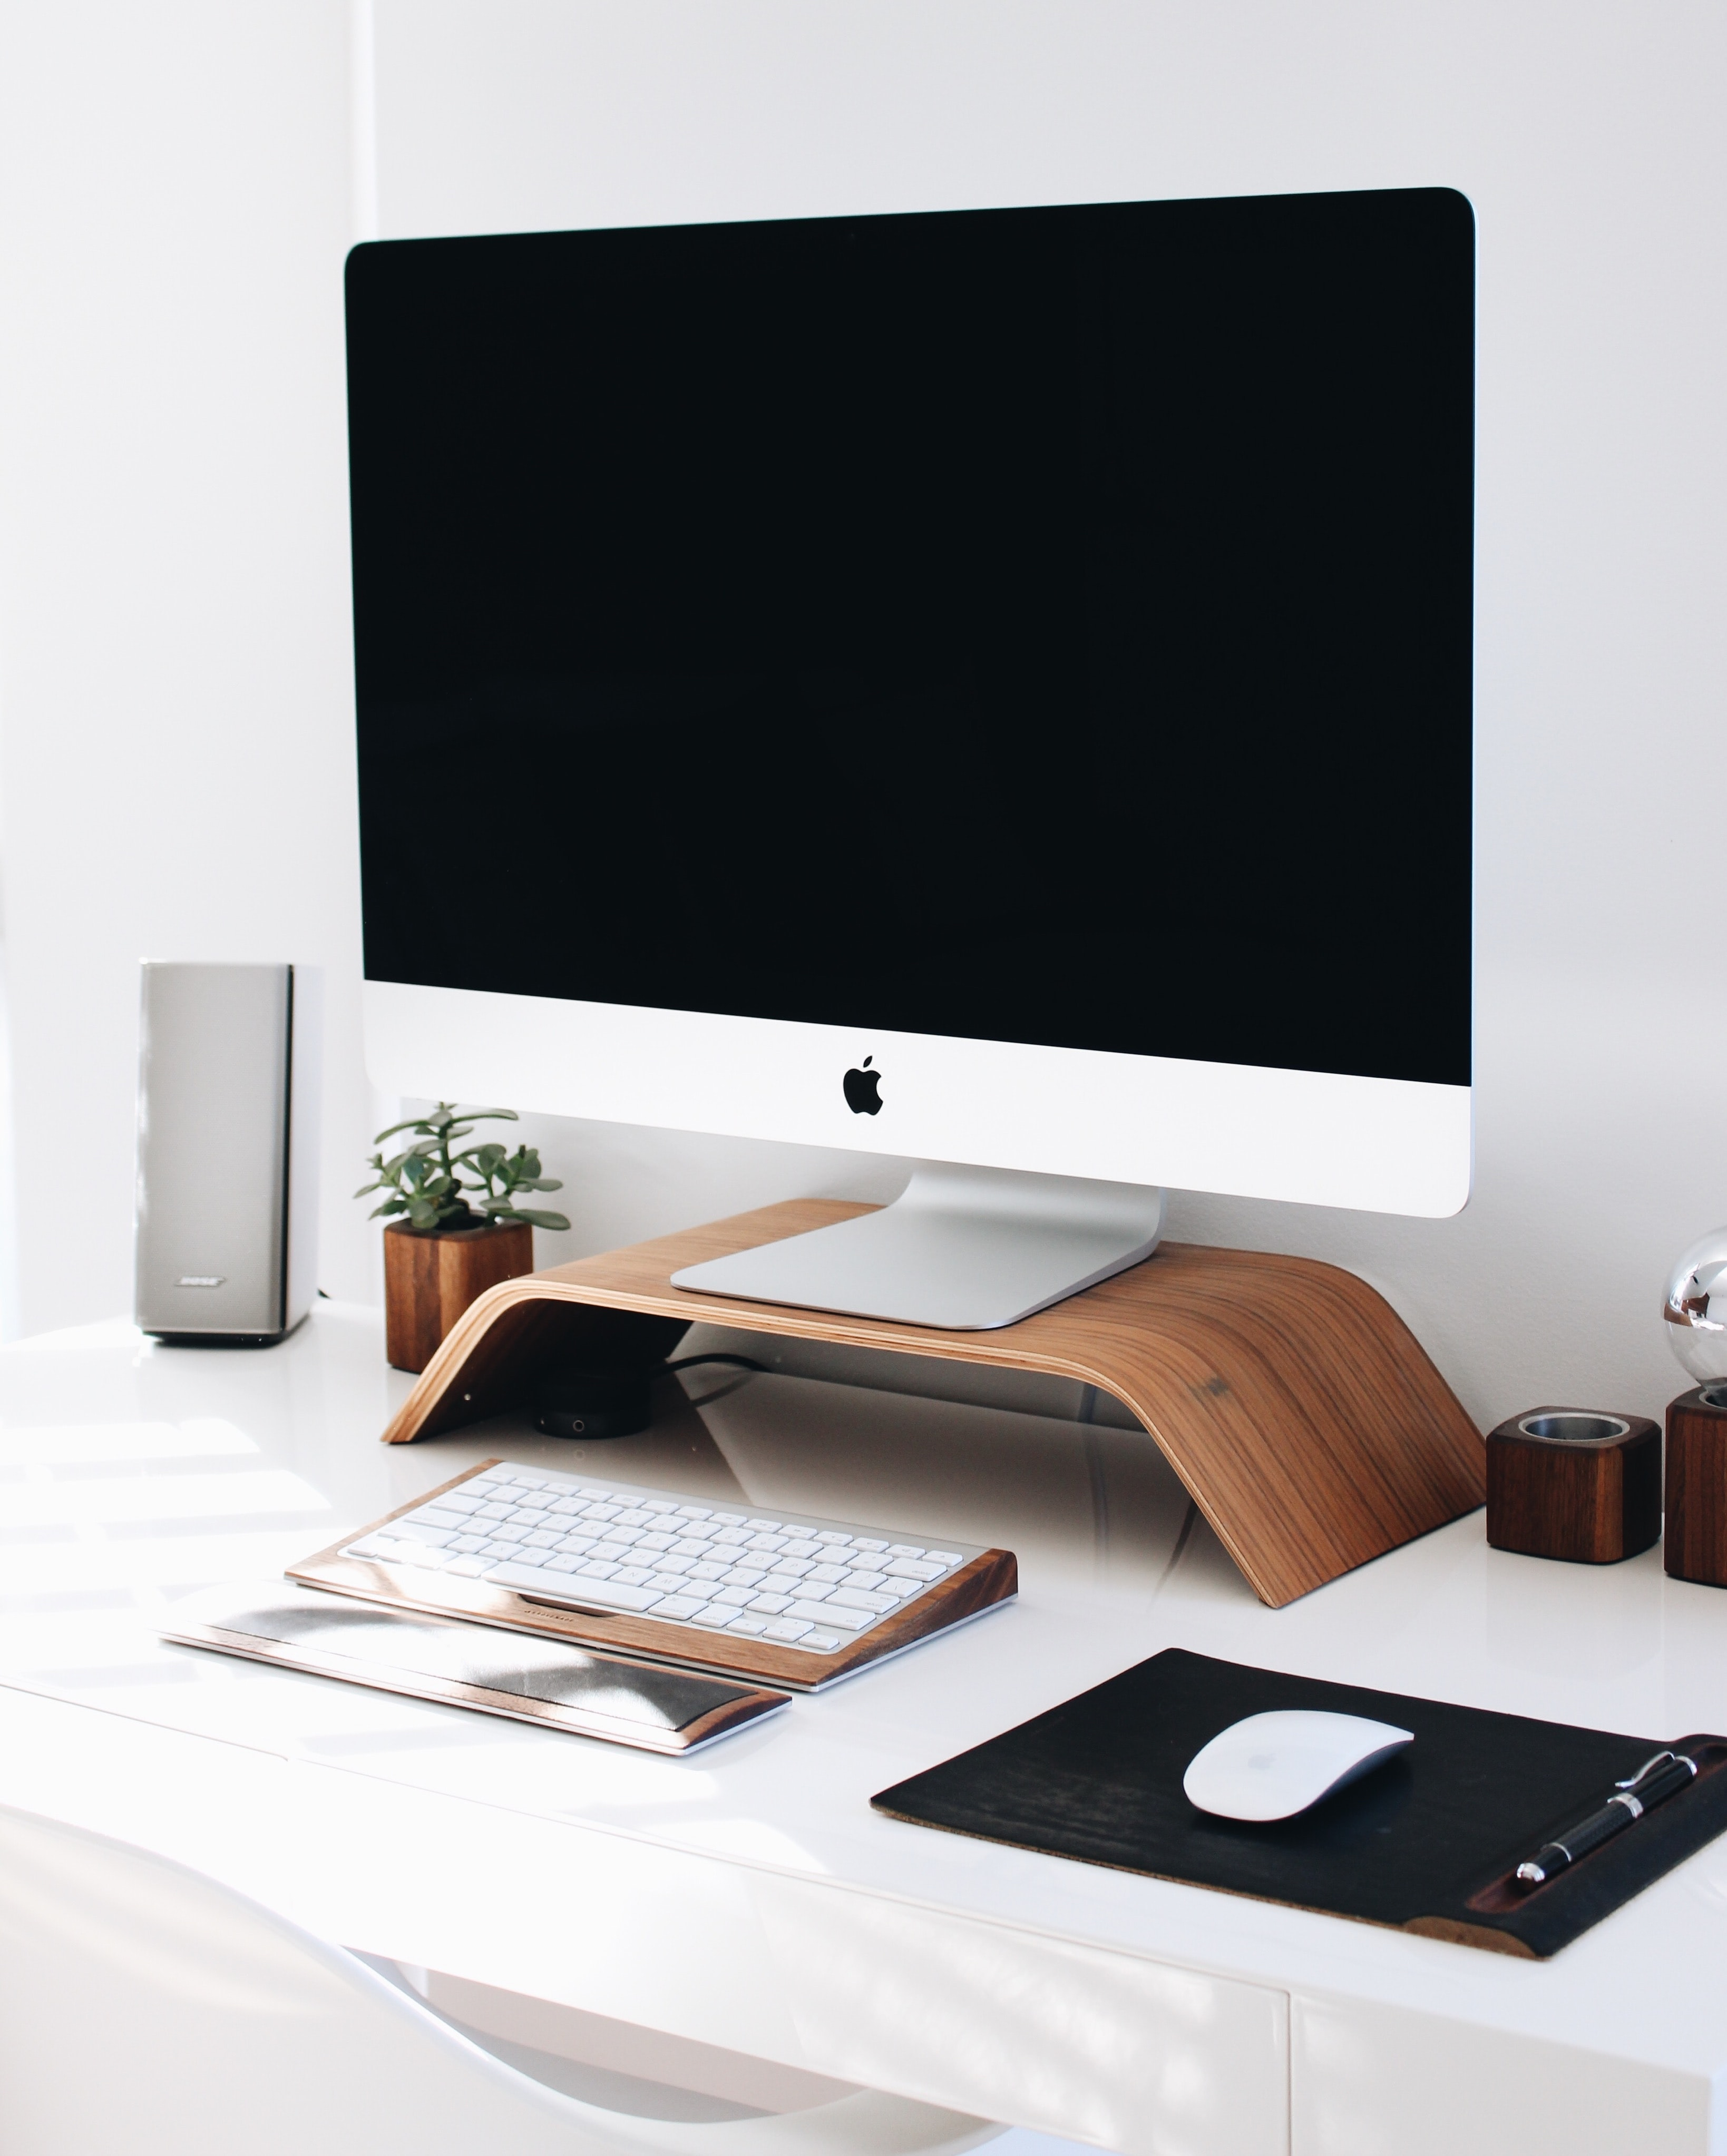 An iMac on a desk with elegant wooden decorations